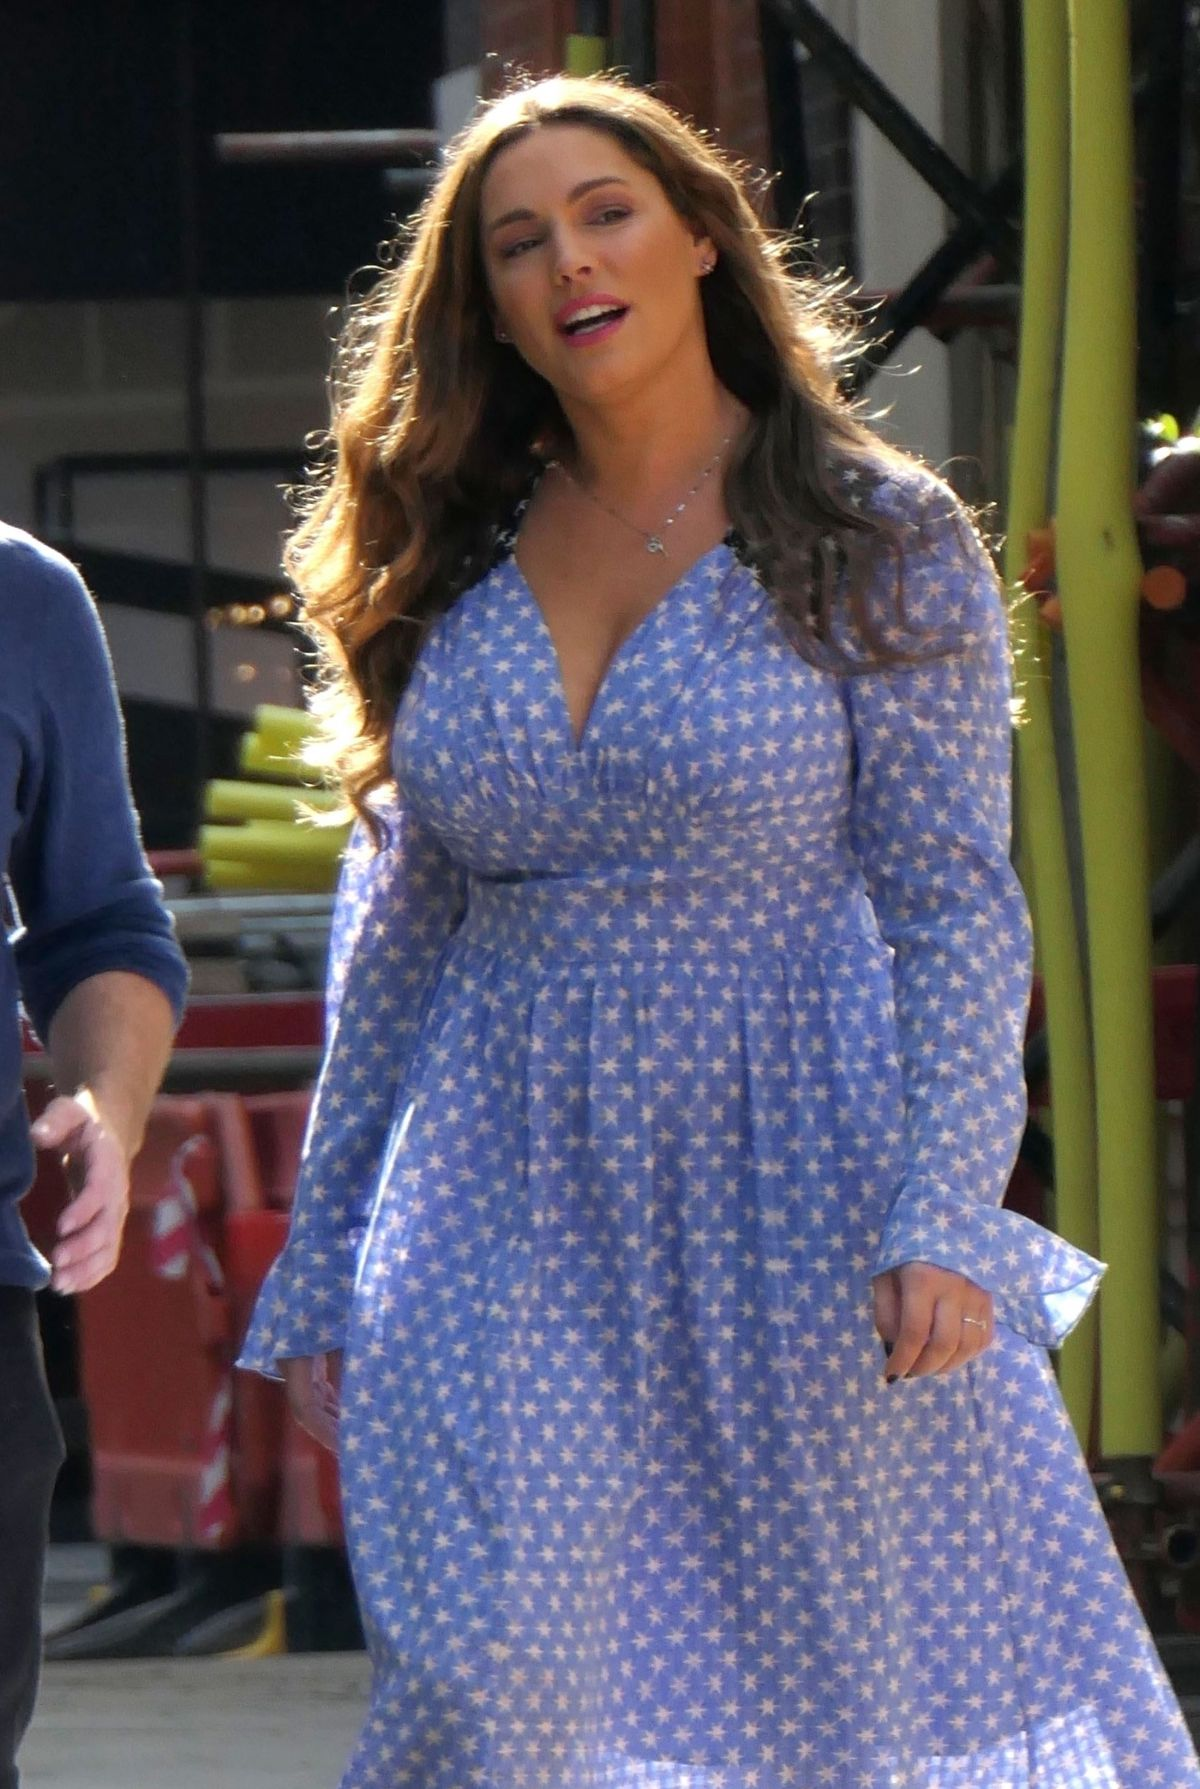 KELLY BROOK Out Filming in London 09/25/2018 – HawtCelebs